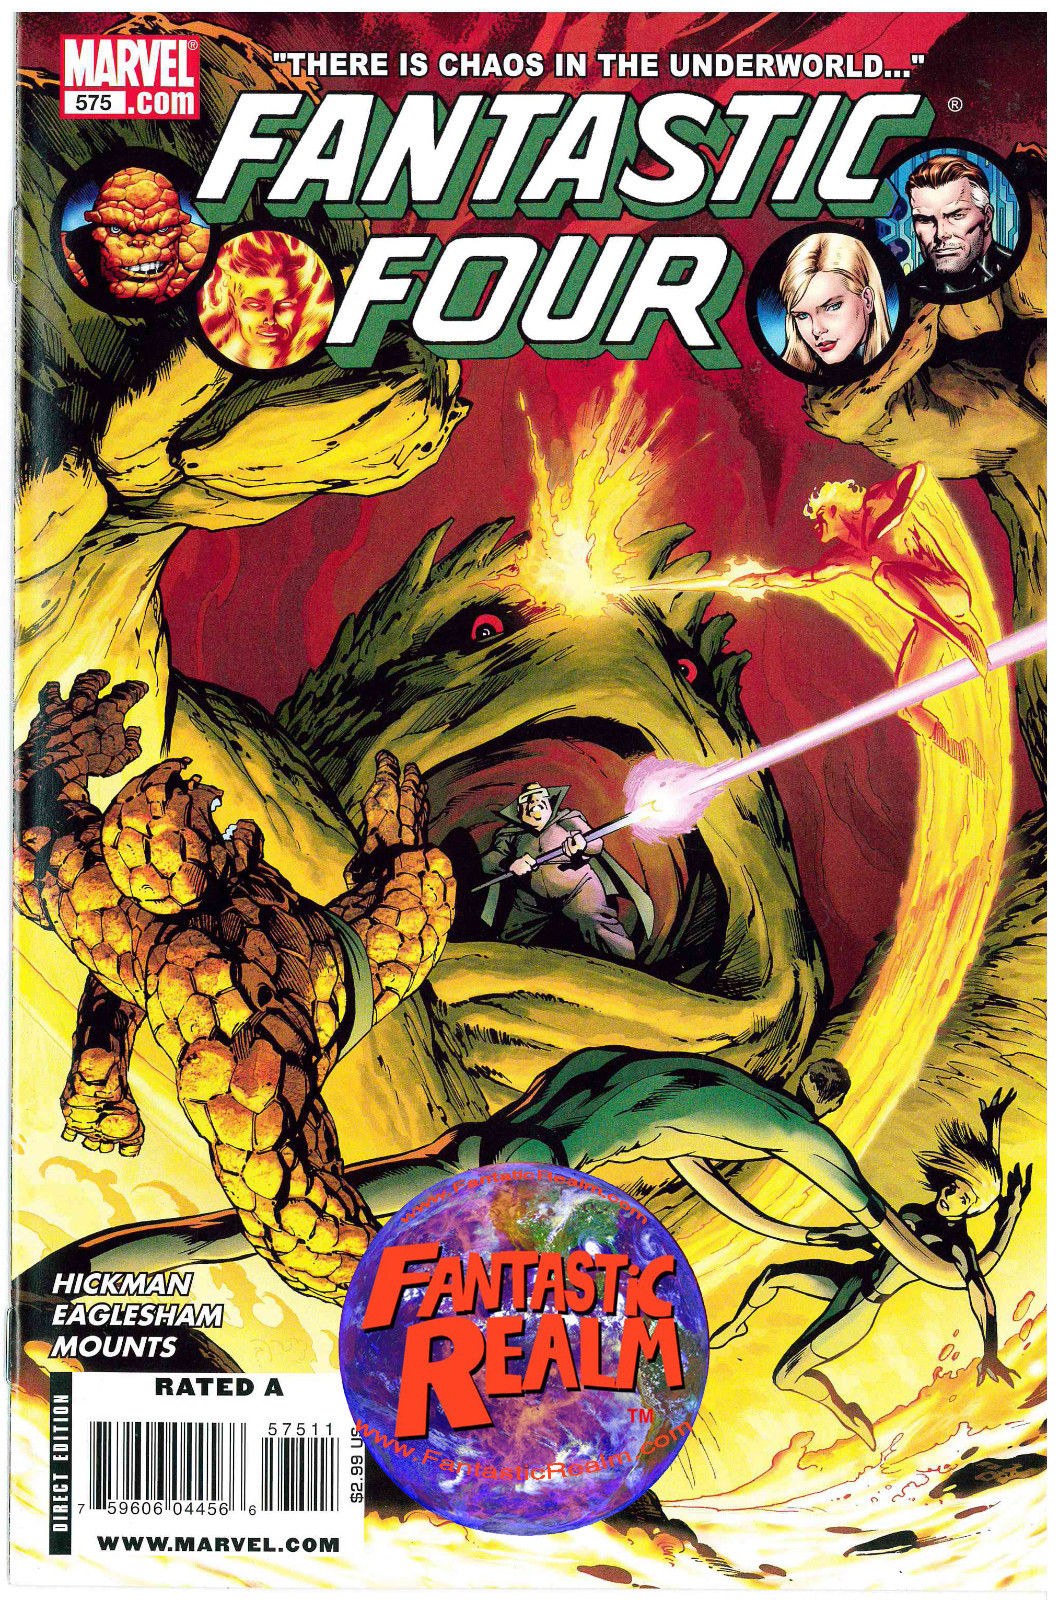 FANTASTIC FOUR #575 MARVEL COMICS